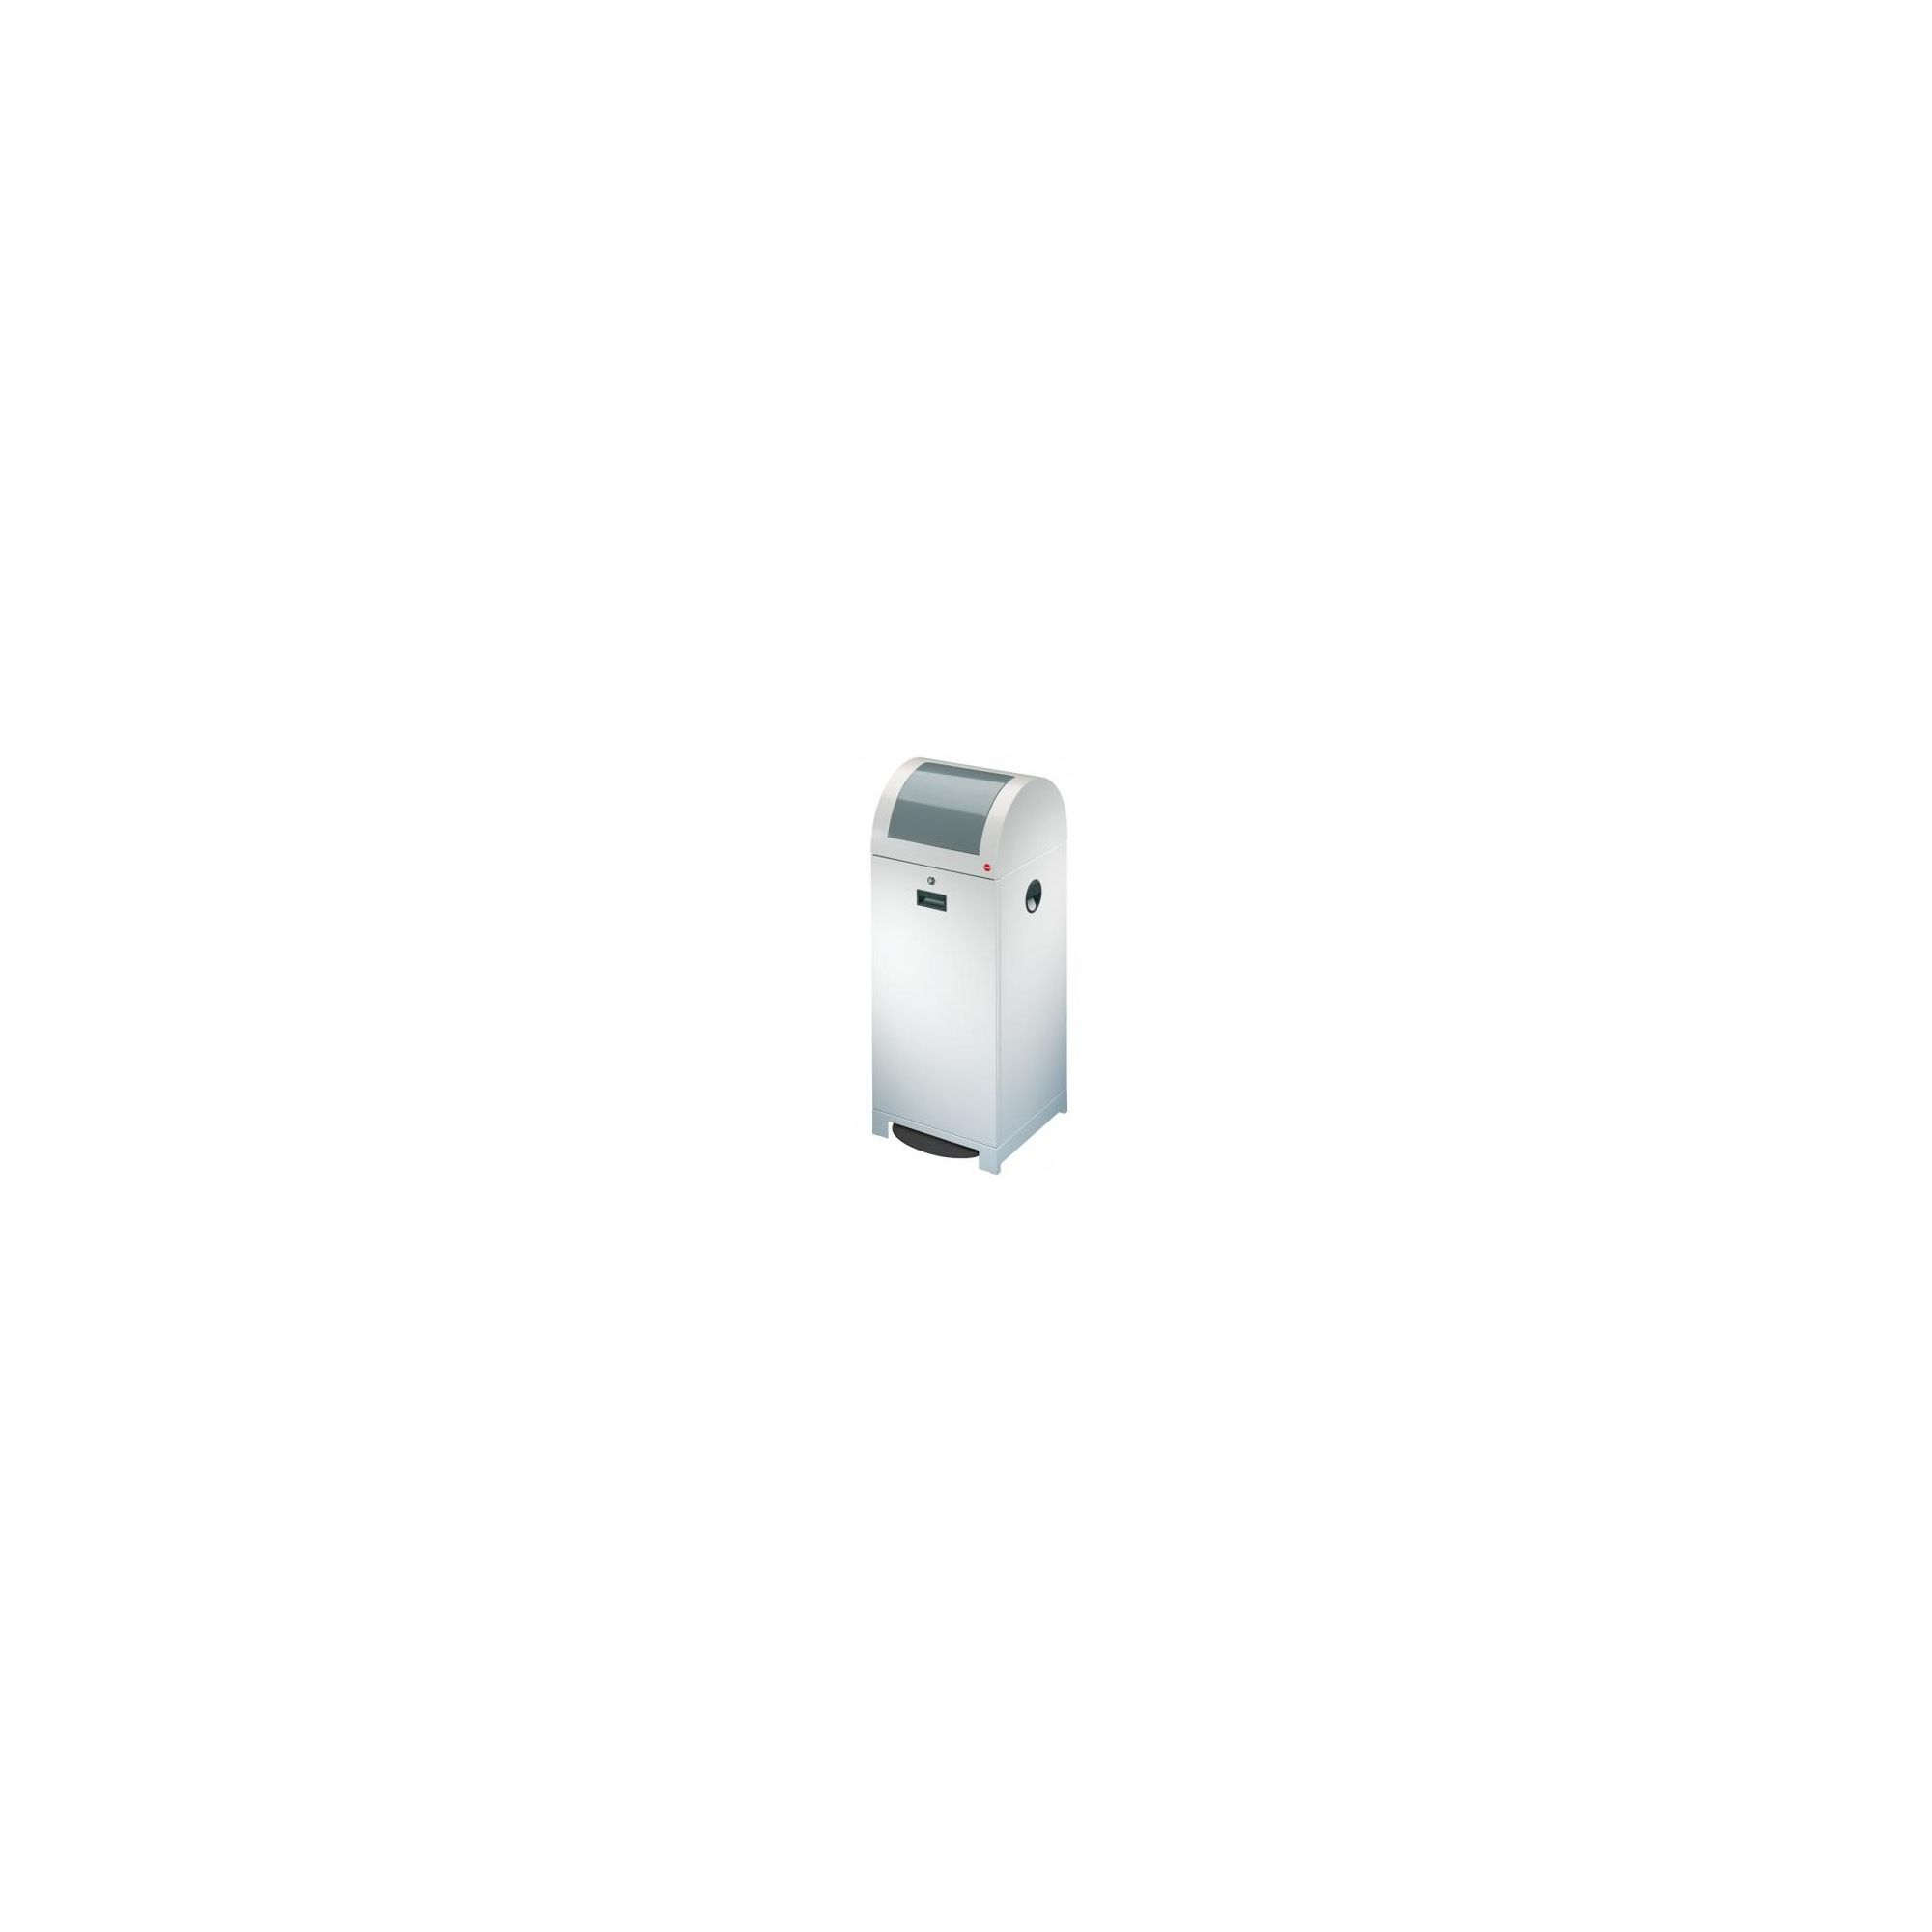 Hailo ProfiLine WSB Design 70P Recycling and Waste Bin in White Aluminium with Bin Liner Holder at Tesco Direct